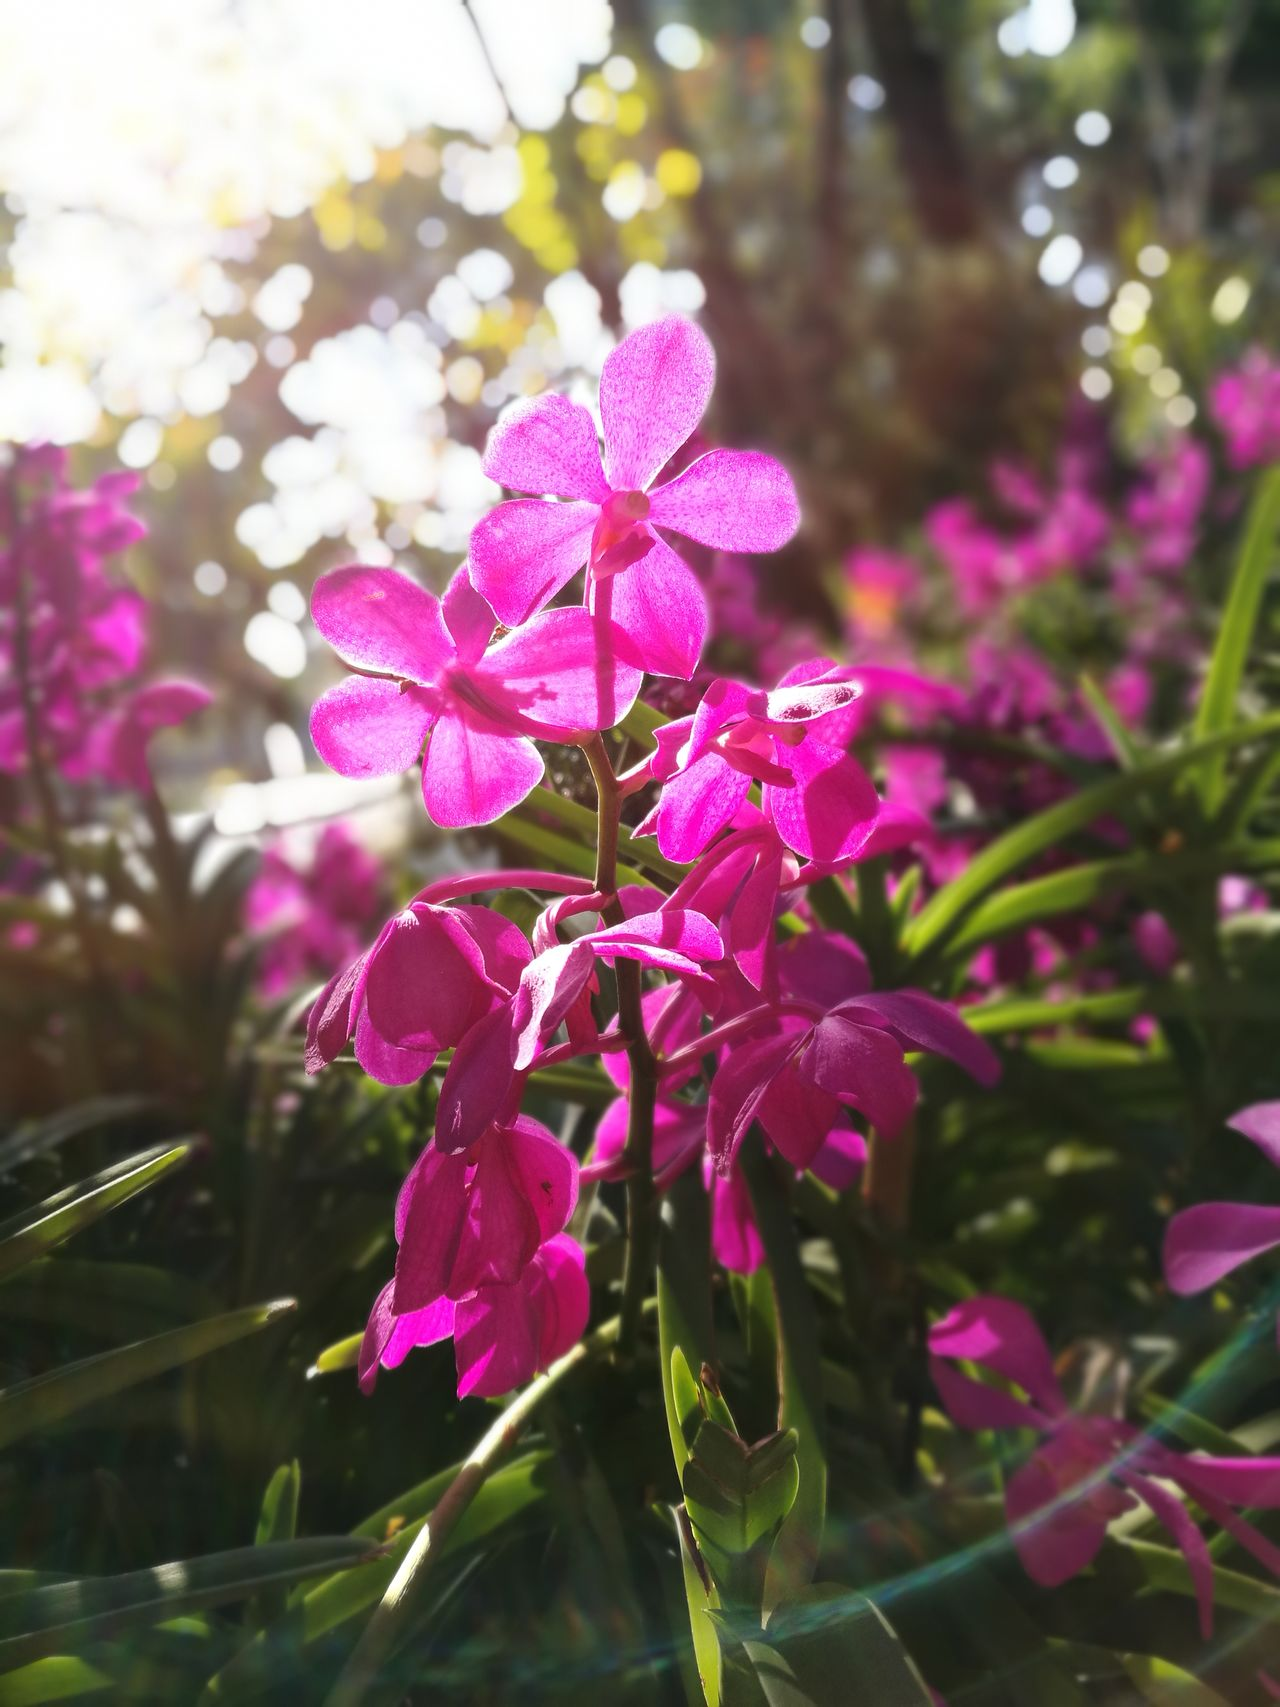 Purple orchids in morning garden light Flower Nature Growth Orchid Beauty In Nature Pink Color Purple Plant Petal Freshness Outdoors Day Exotic Exotic Flowers Garden Morning Light Thailand